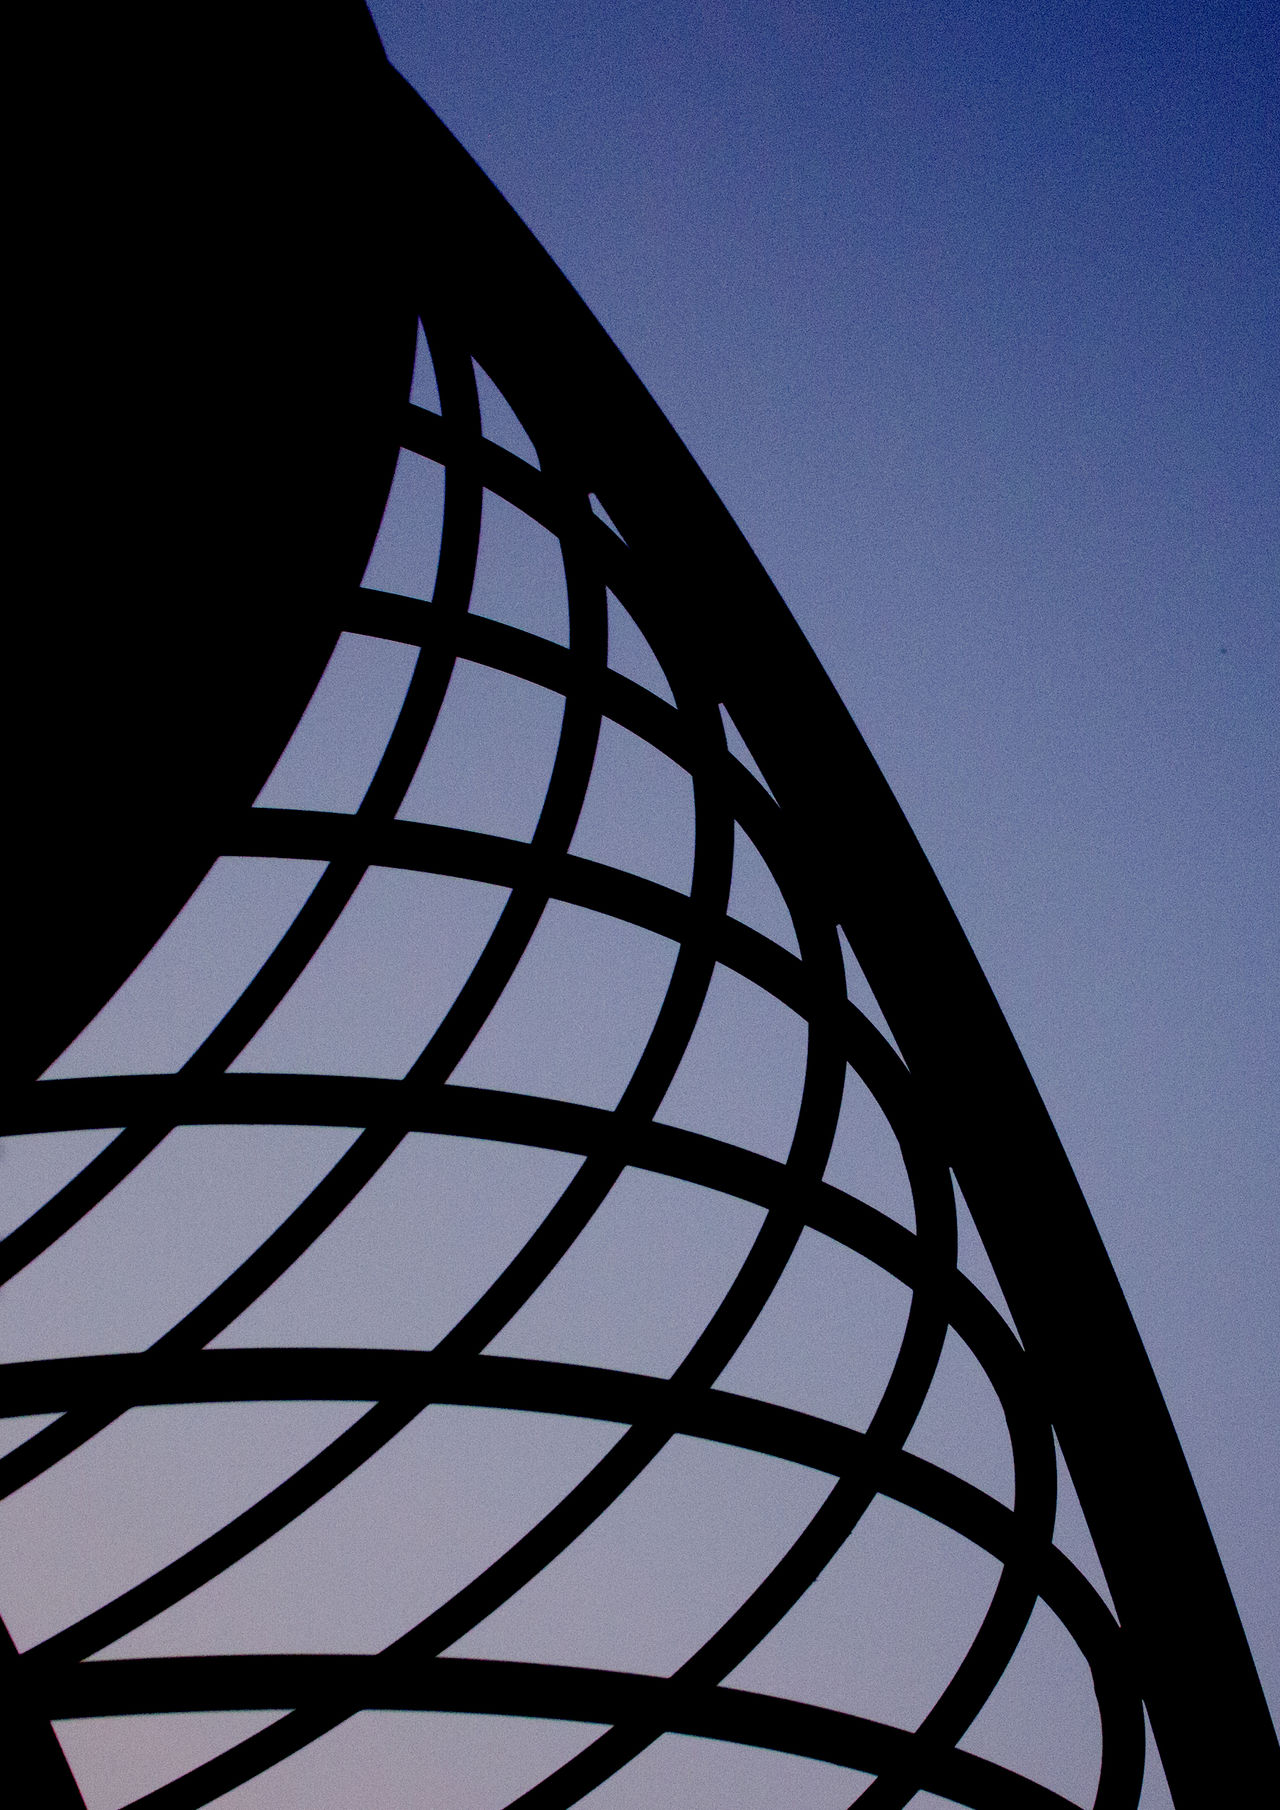 Architecture Close-up Dark Evening EyeEm EyeEm Gallery EyeEmNewHere Gettingdark Mypointofview Outdoors Park Playground Playground Equipment Shadow Silhouette Waitingforthenight The Architect - 2017 EyeEm Awards BYOPaper! EyeEm Selects